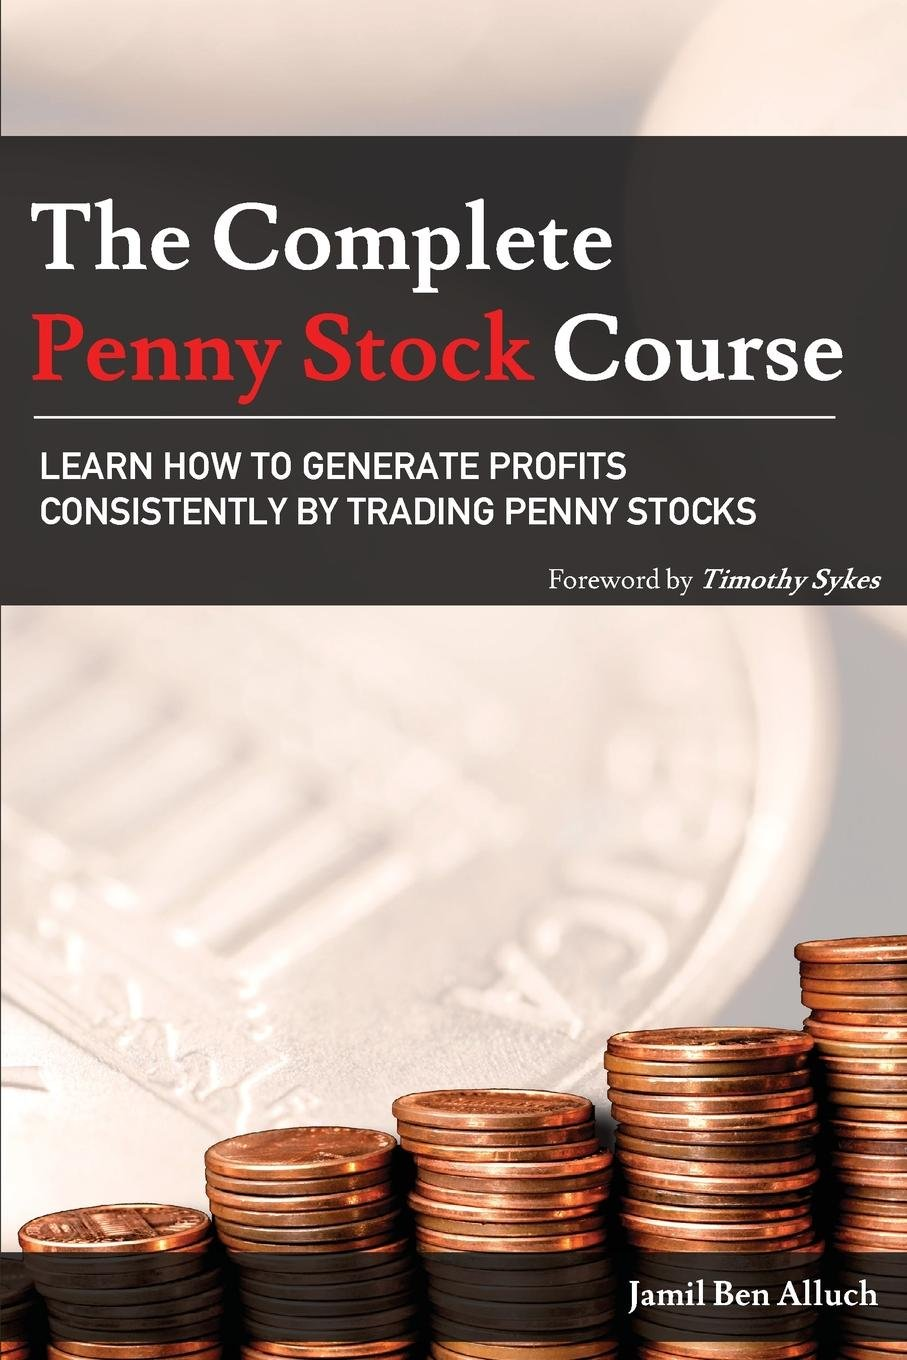 The Complete Penny Stock Course: Learn How To Generate Profits